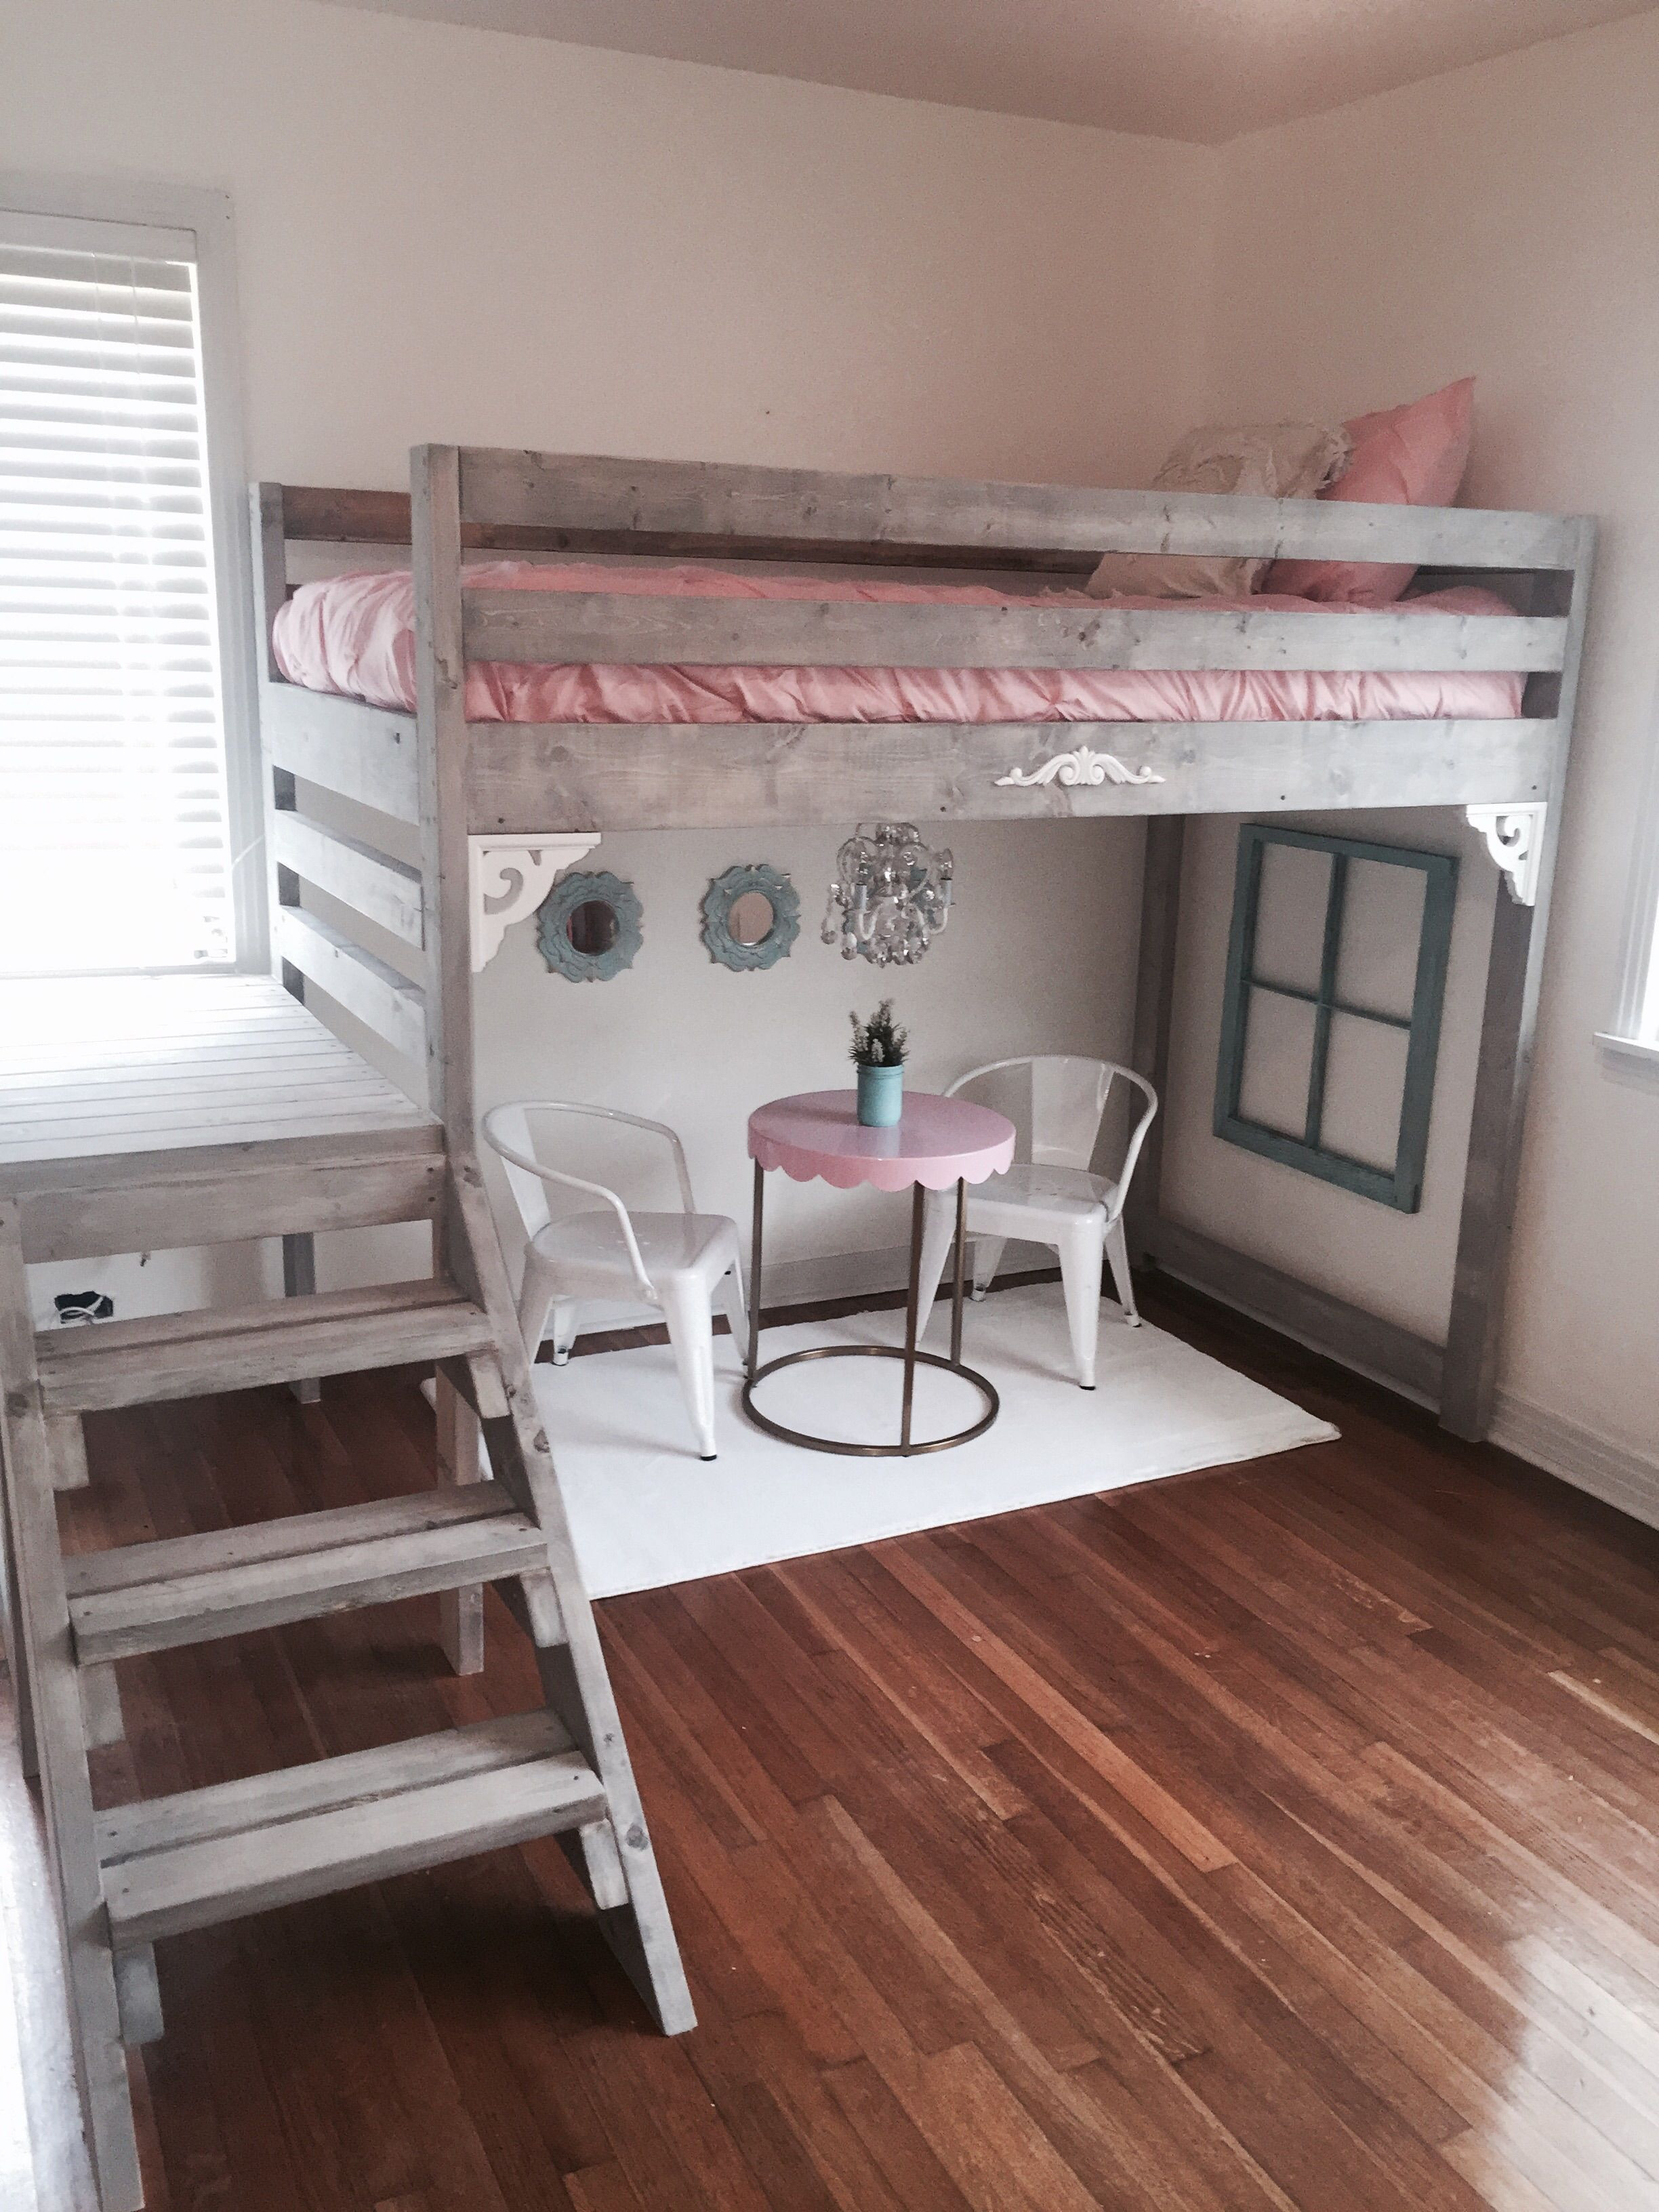 Best ideas about DIY Girls Beds . Save or Pin Ana white loft bed I made for my daughters room Now.